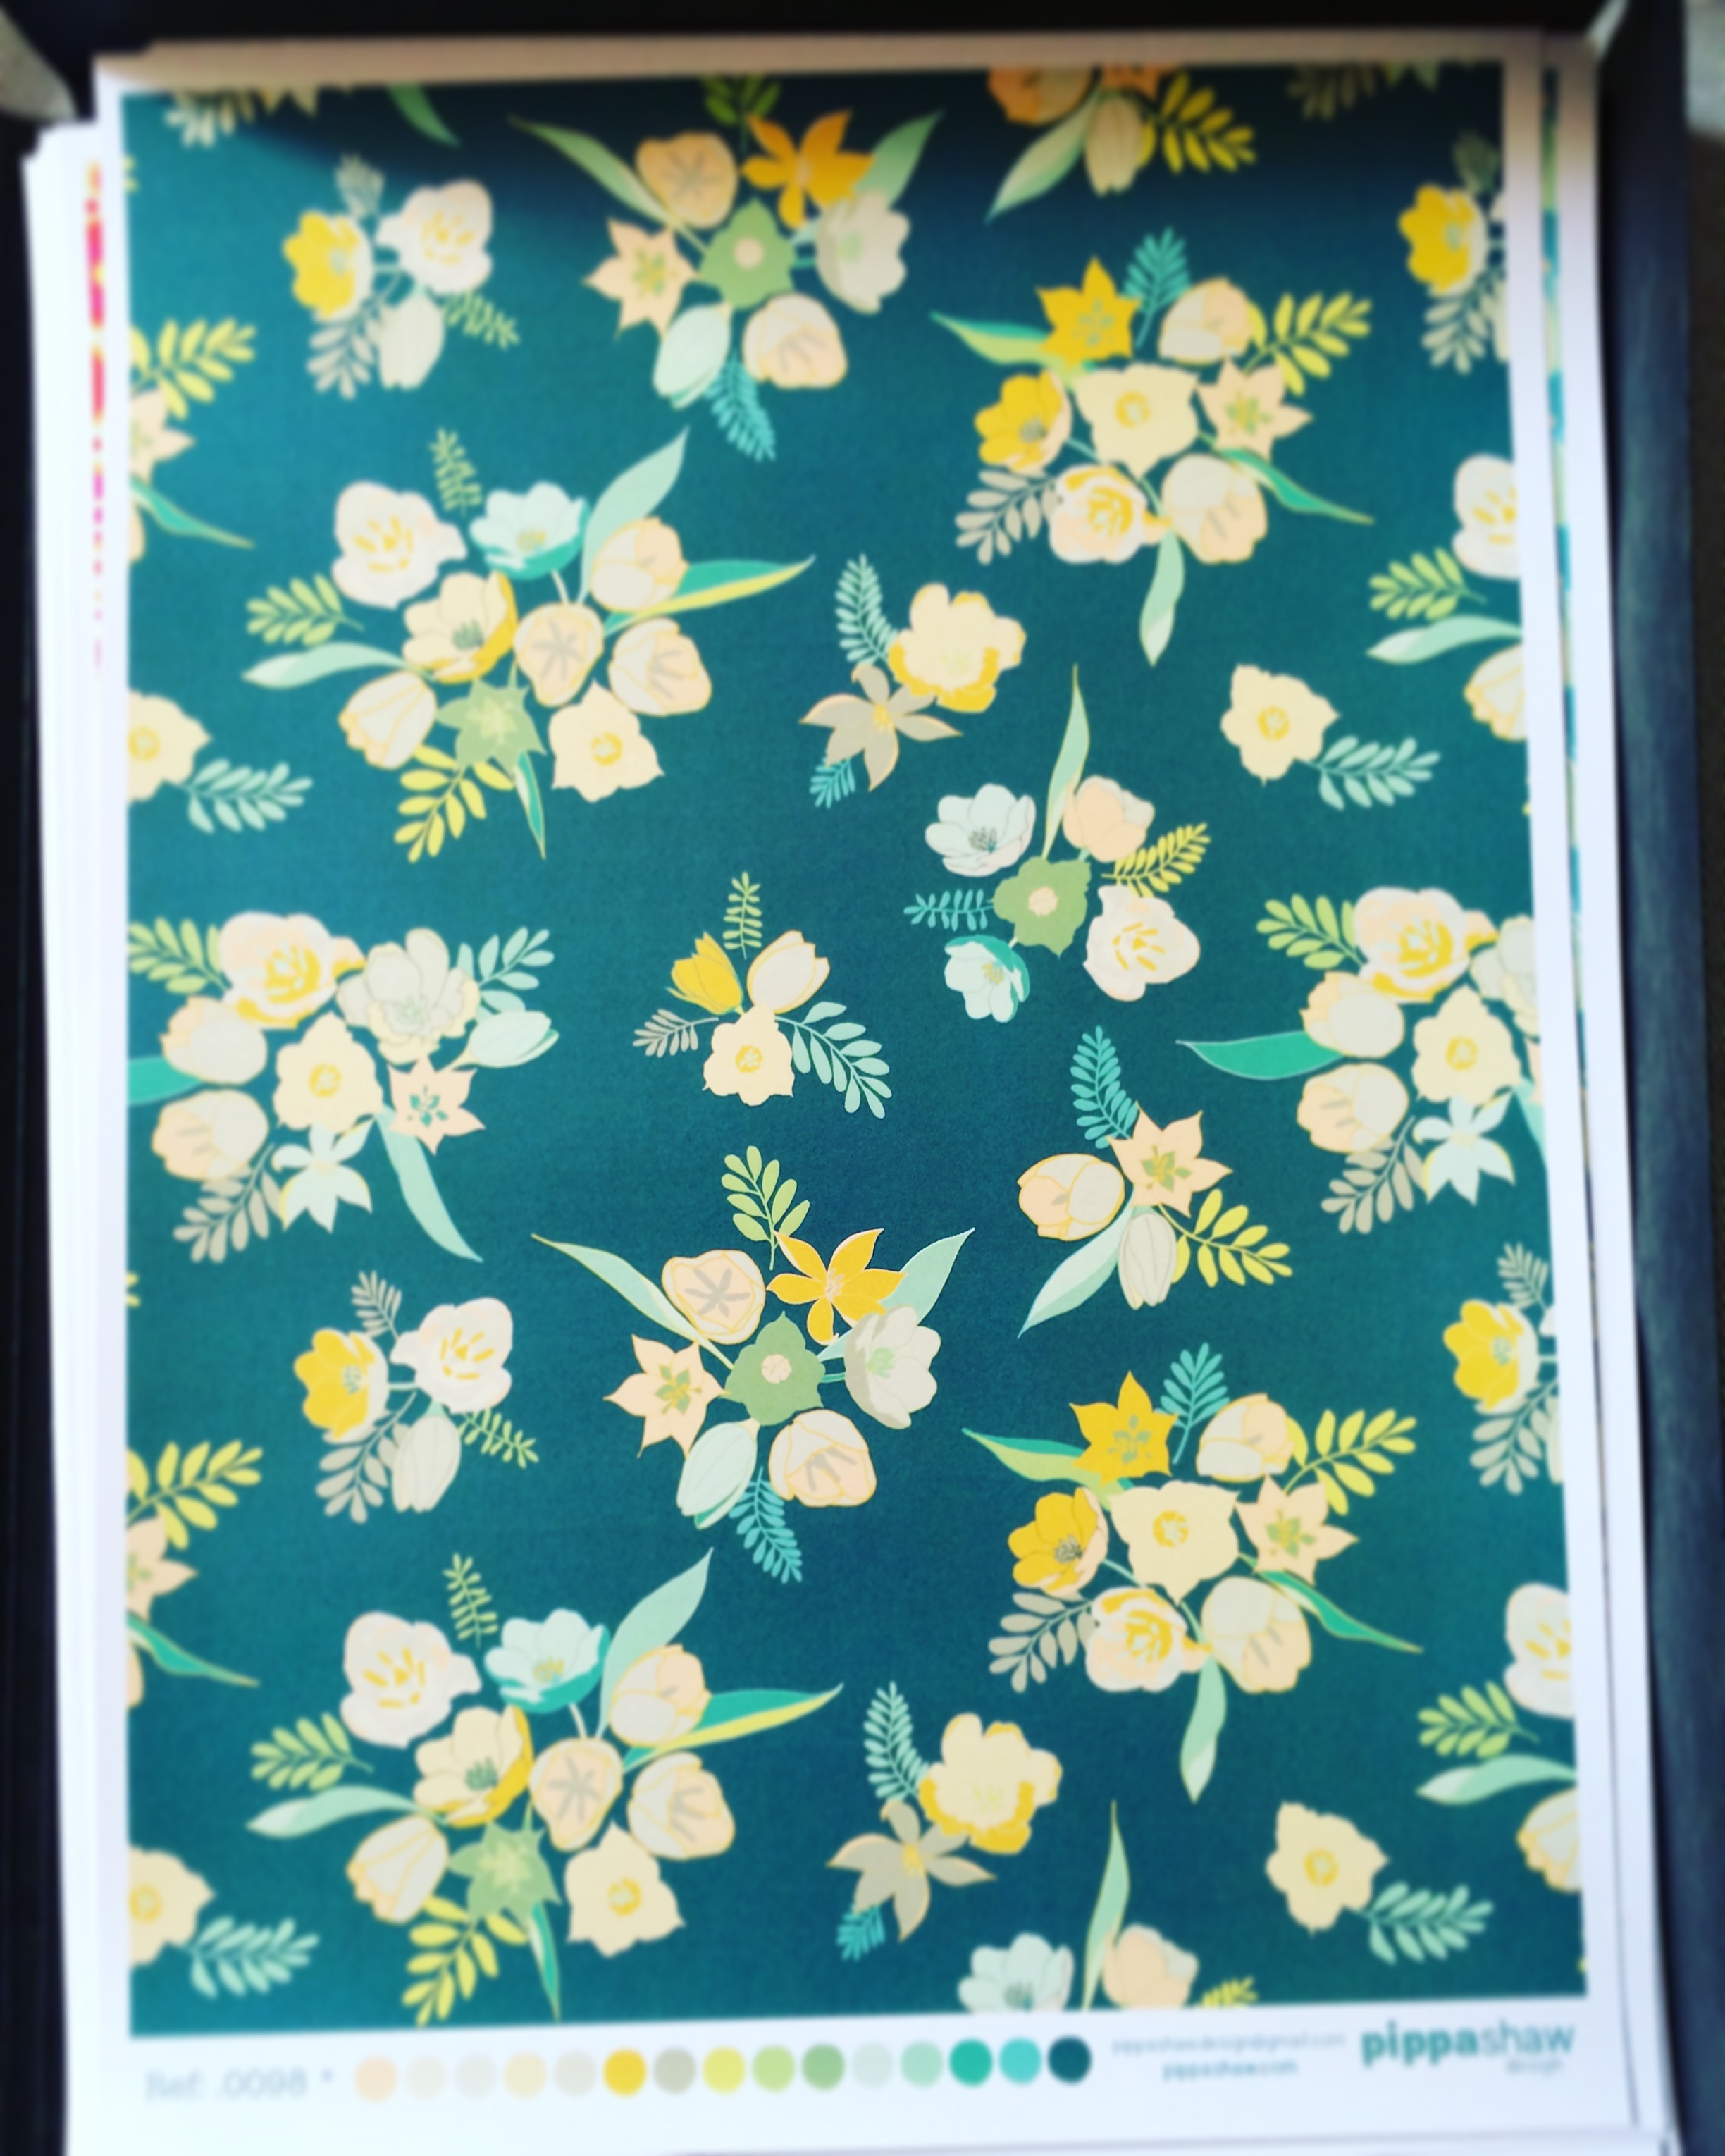 my vintage tulip design printed on an A3 sheet to show to clients